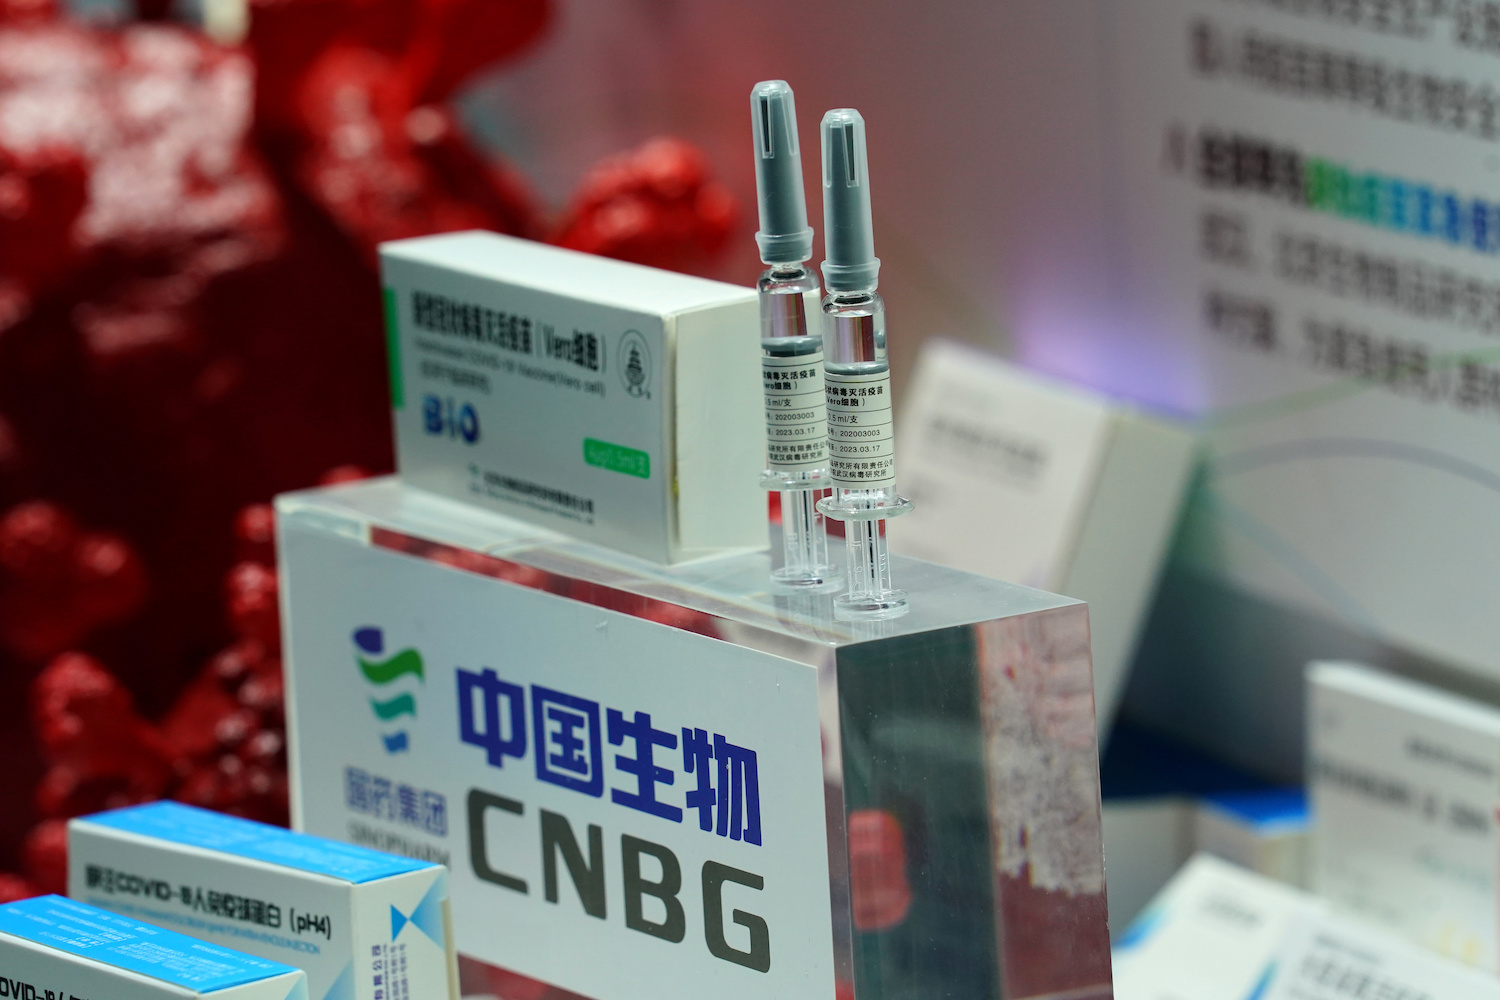 China to vaccinate all citizens in 1-2 years